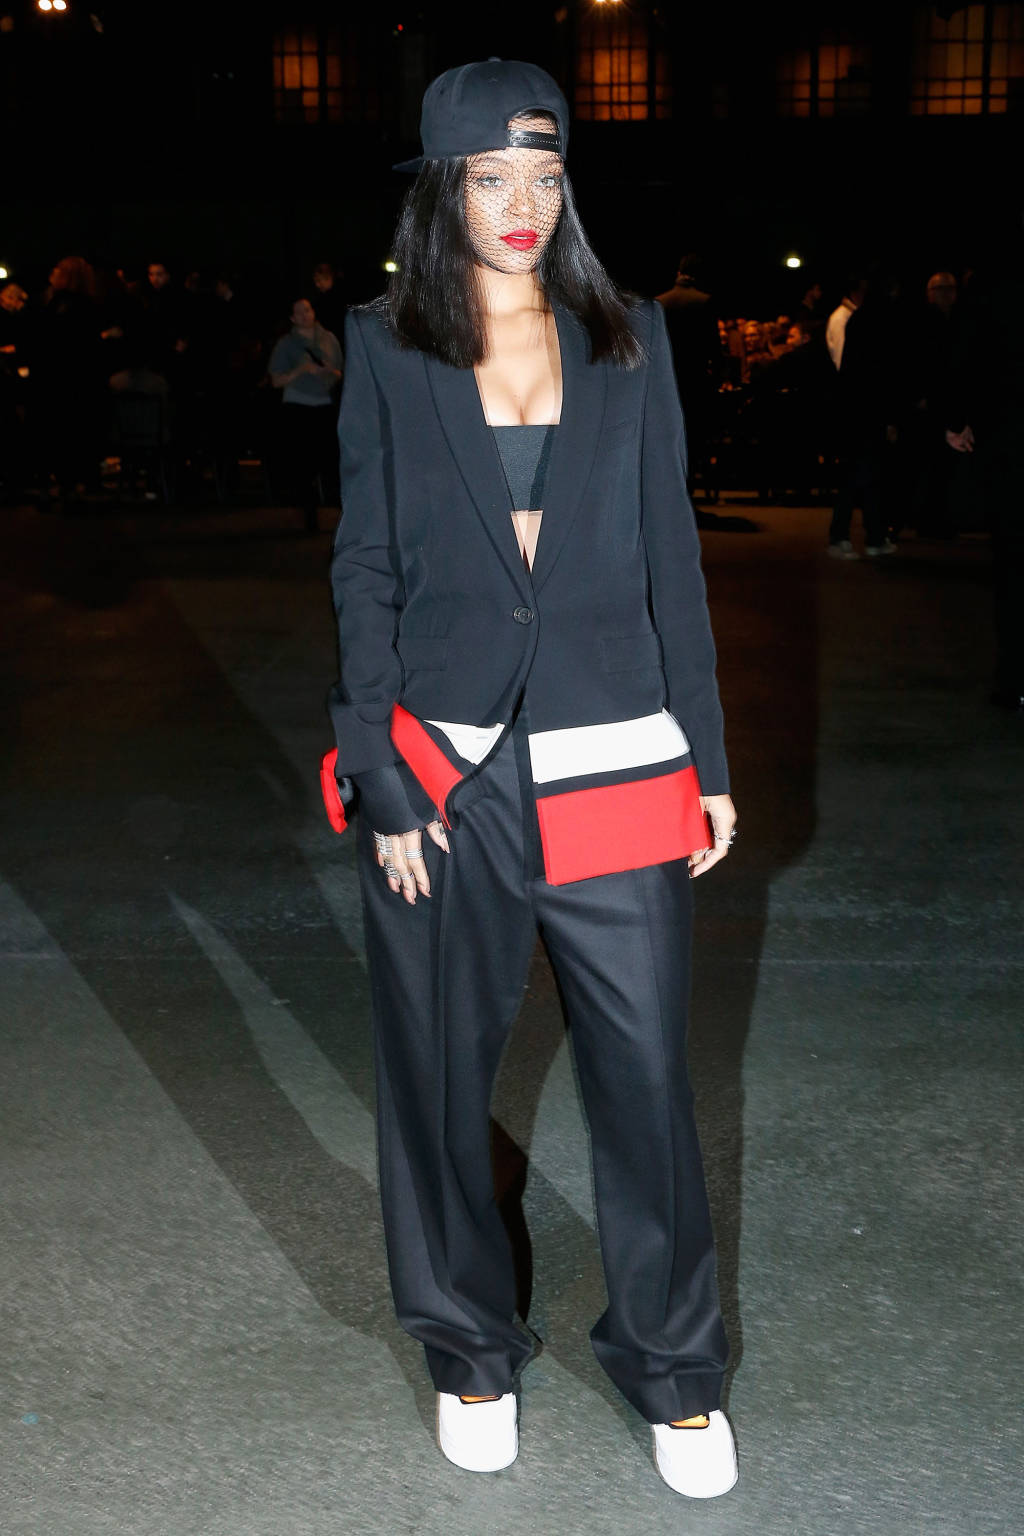 riri-paris-givenchy